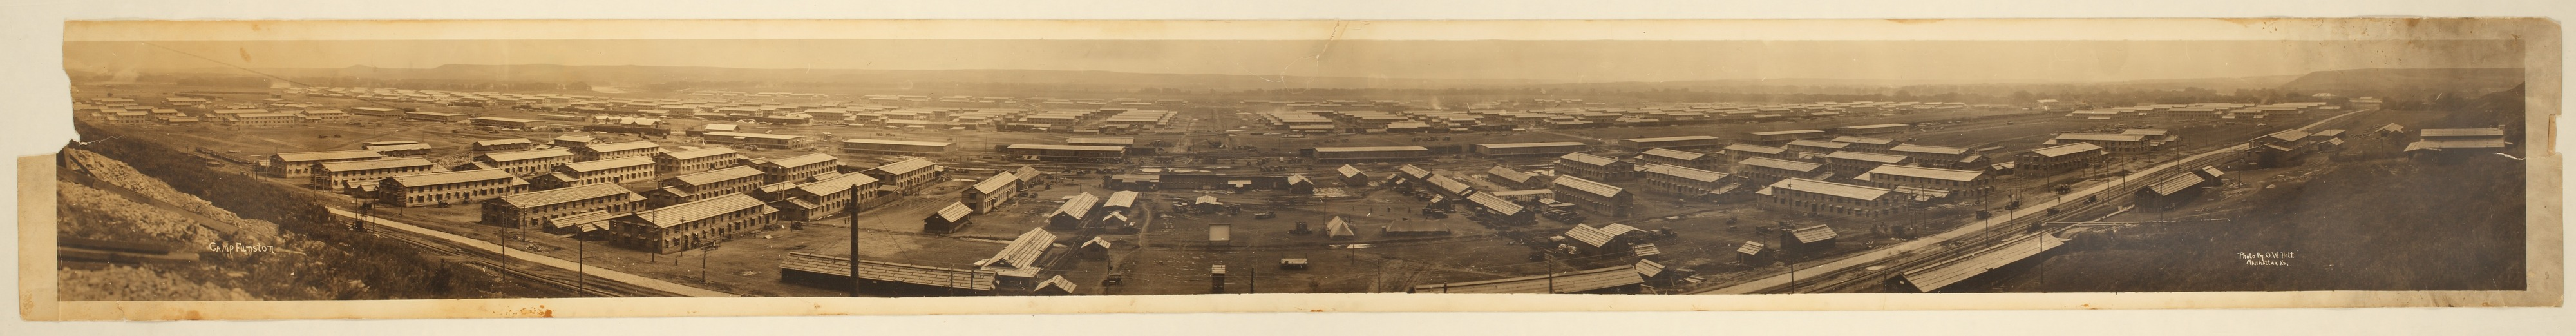 Camp Funston, Fort Riley, Kansas - 1